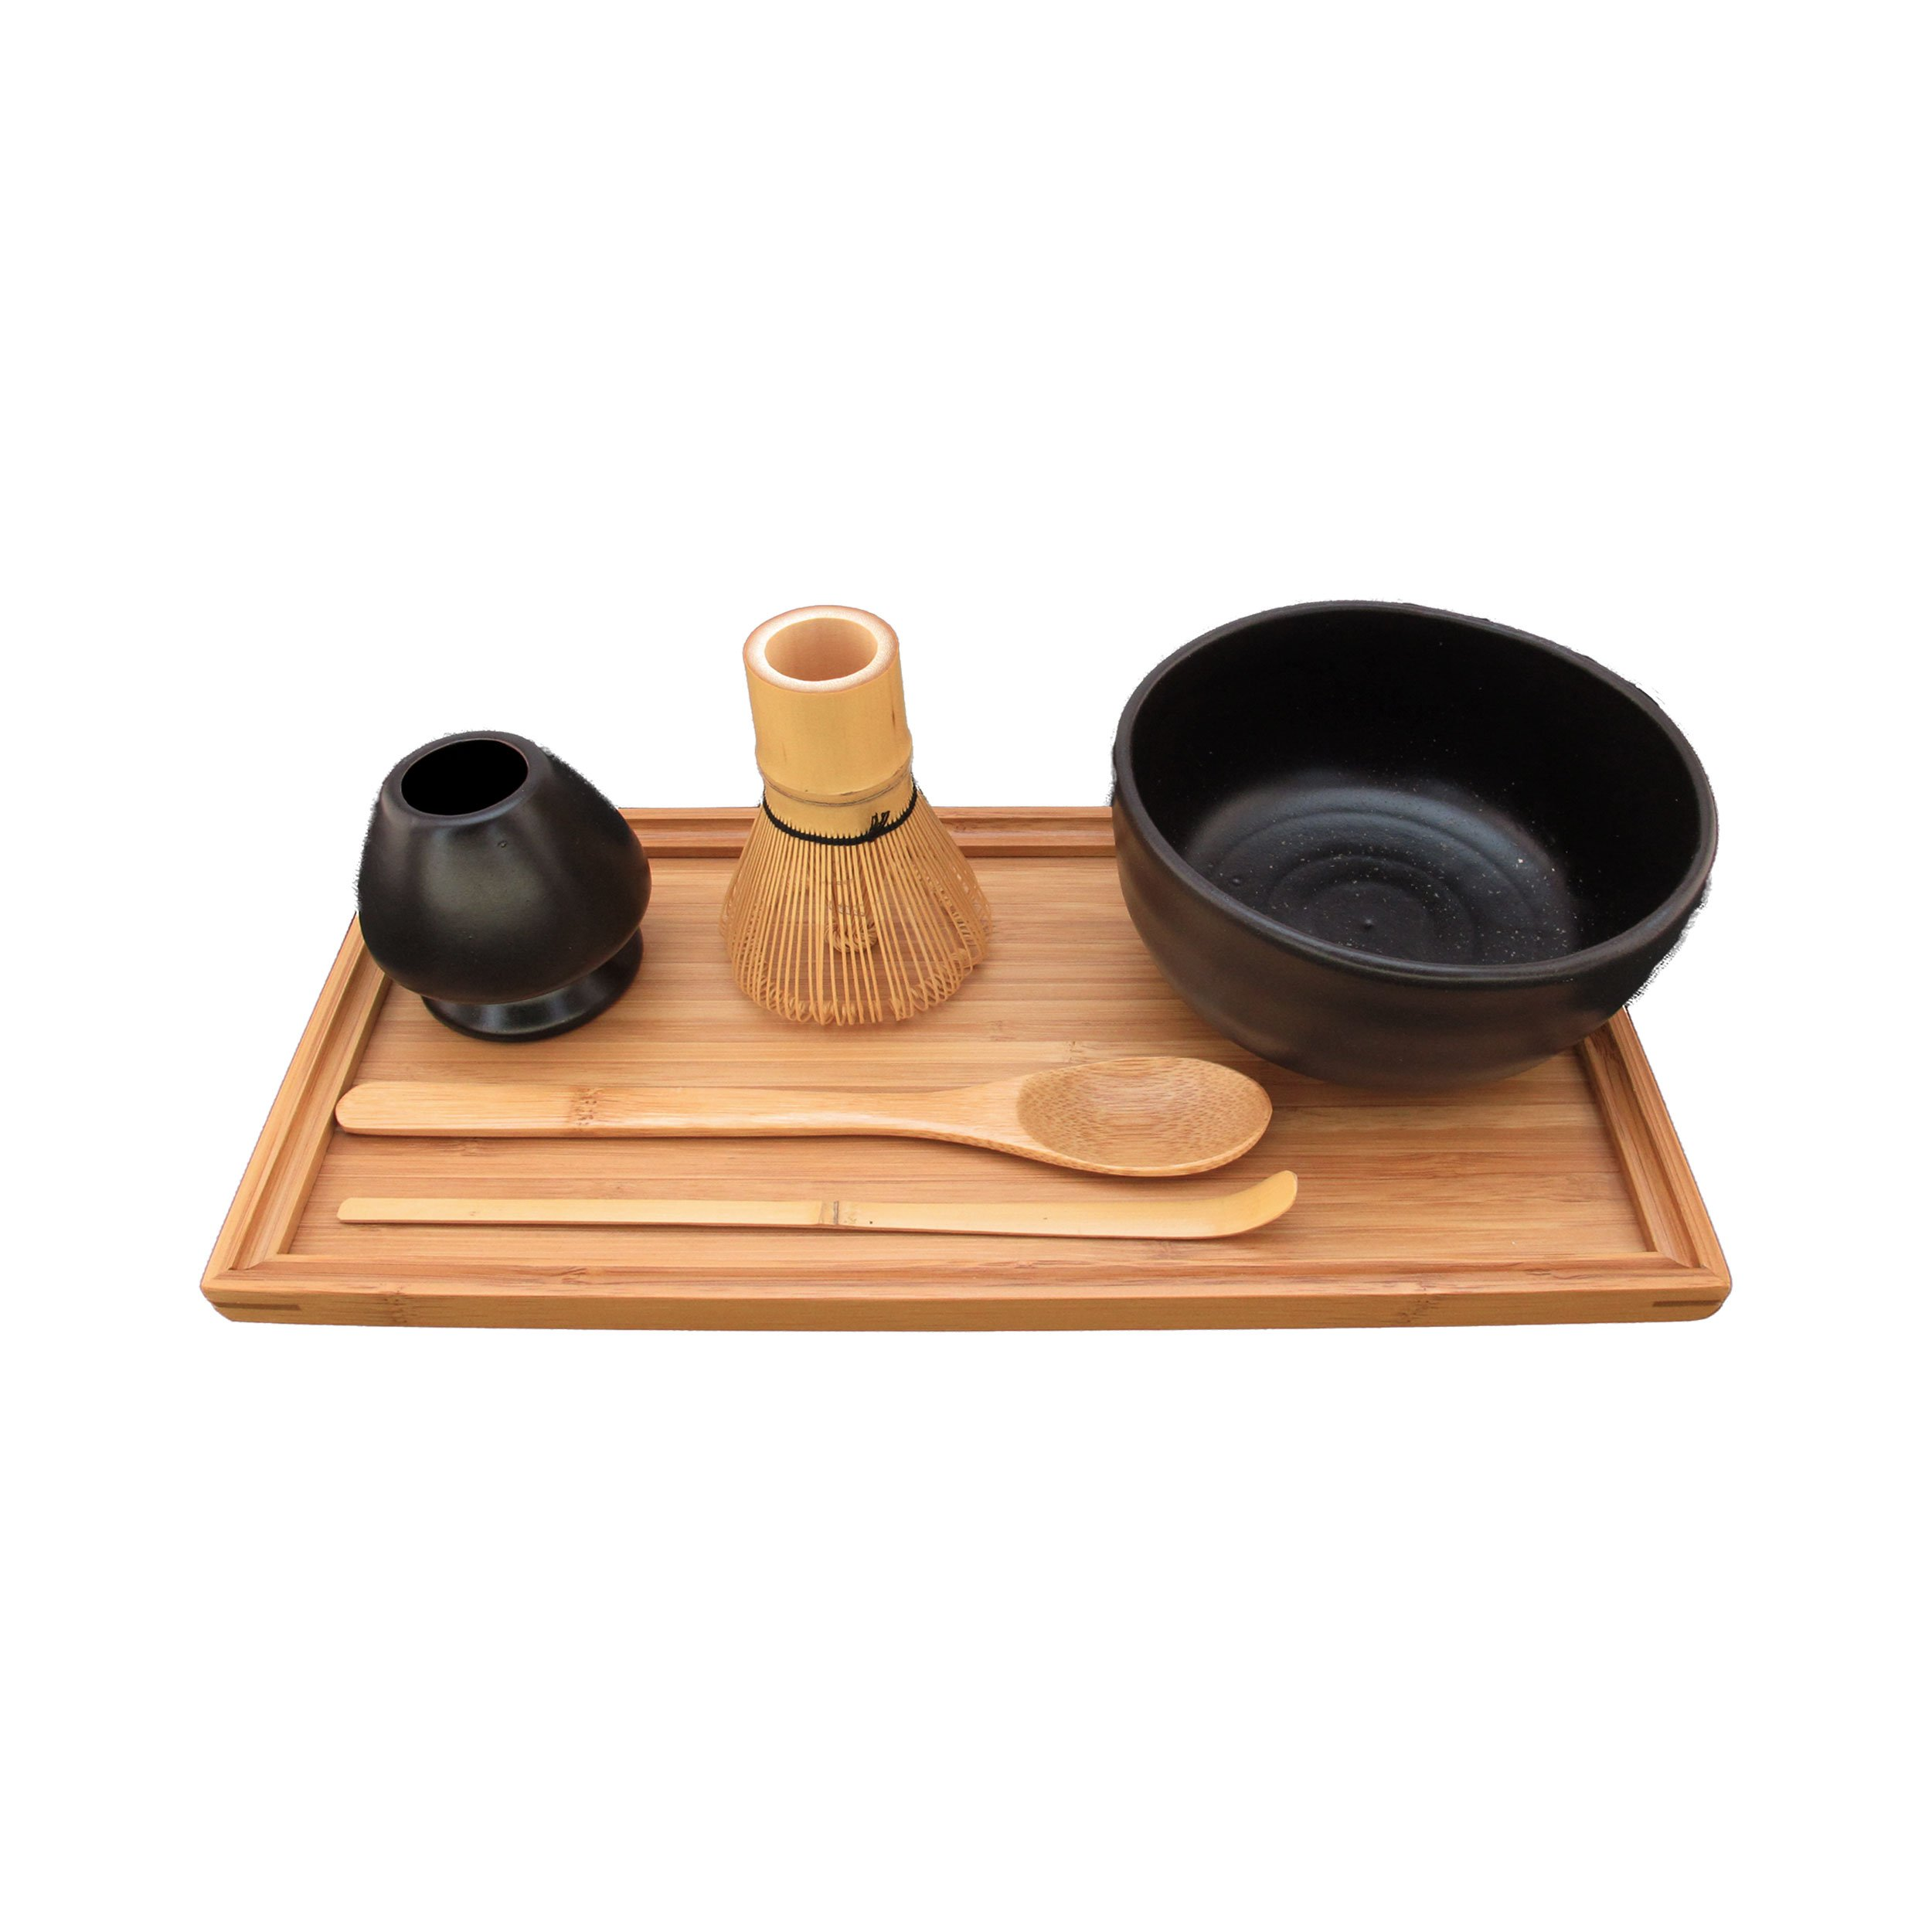 BambooMN Brand - Matcha Bowl Set (Includes Bowl, Rest,Tea Whisk, Chasaku, Tea Spoon & Tray) 1 Set Black by BambooMN